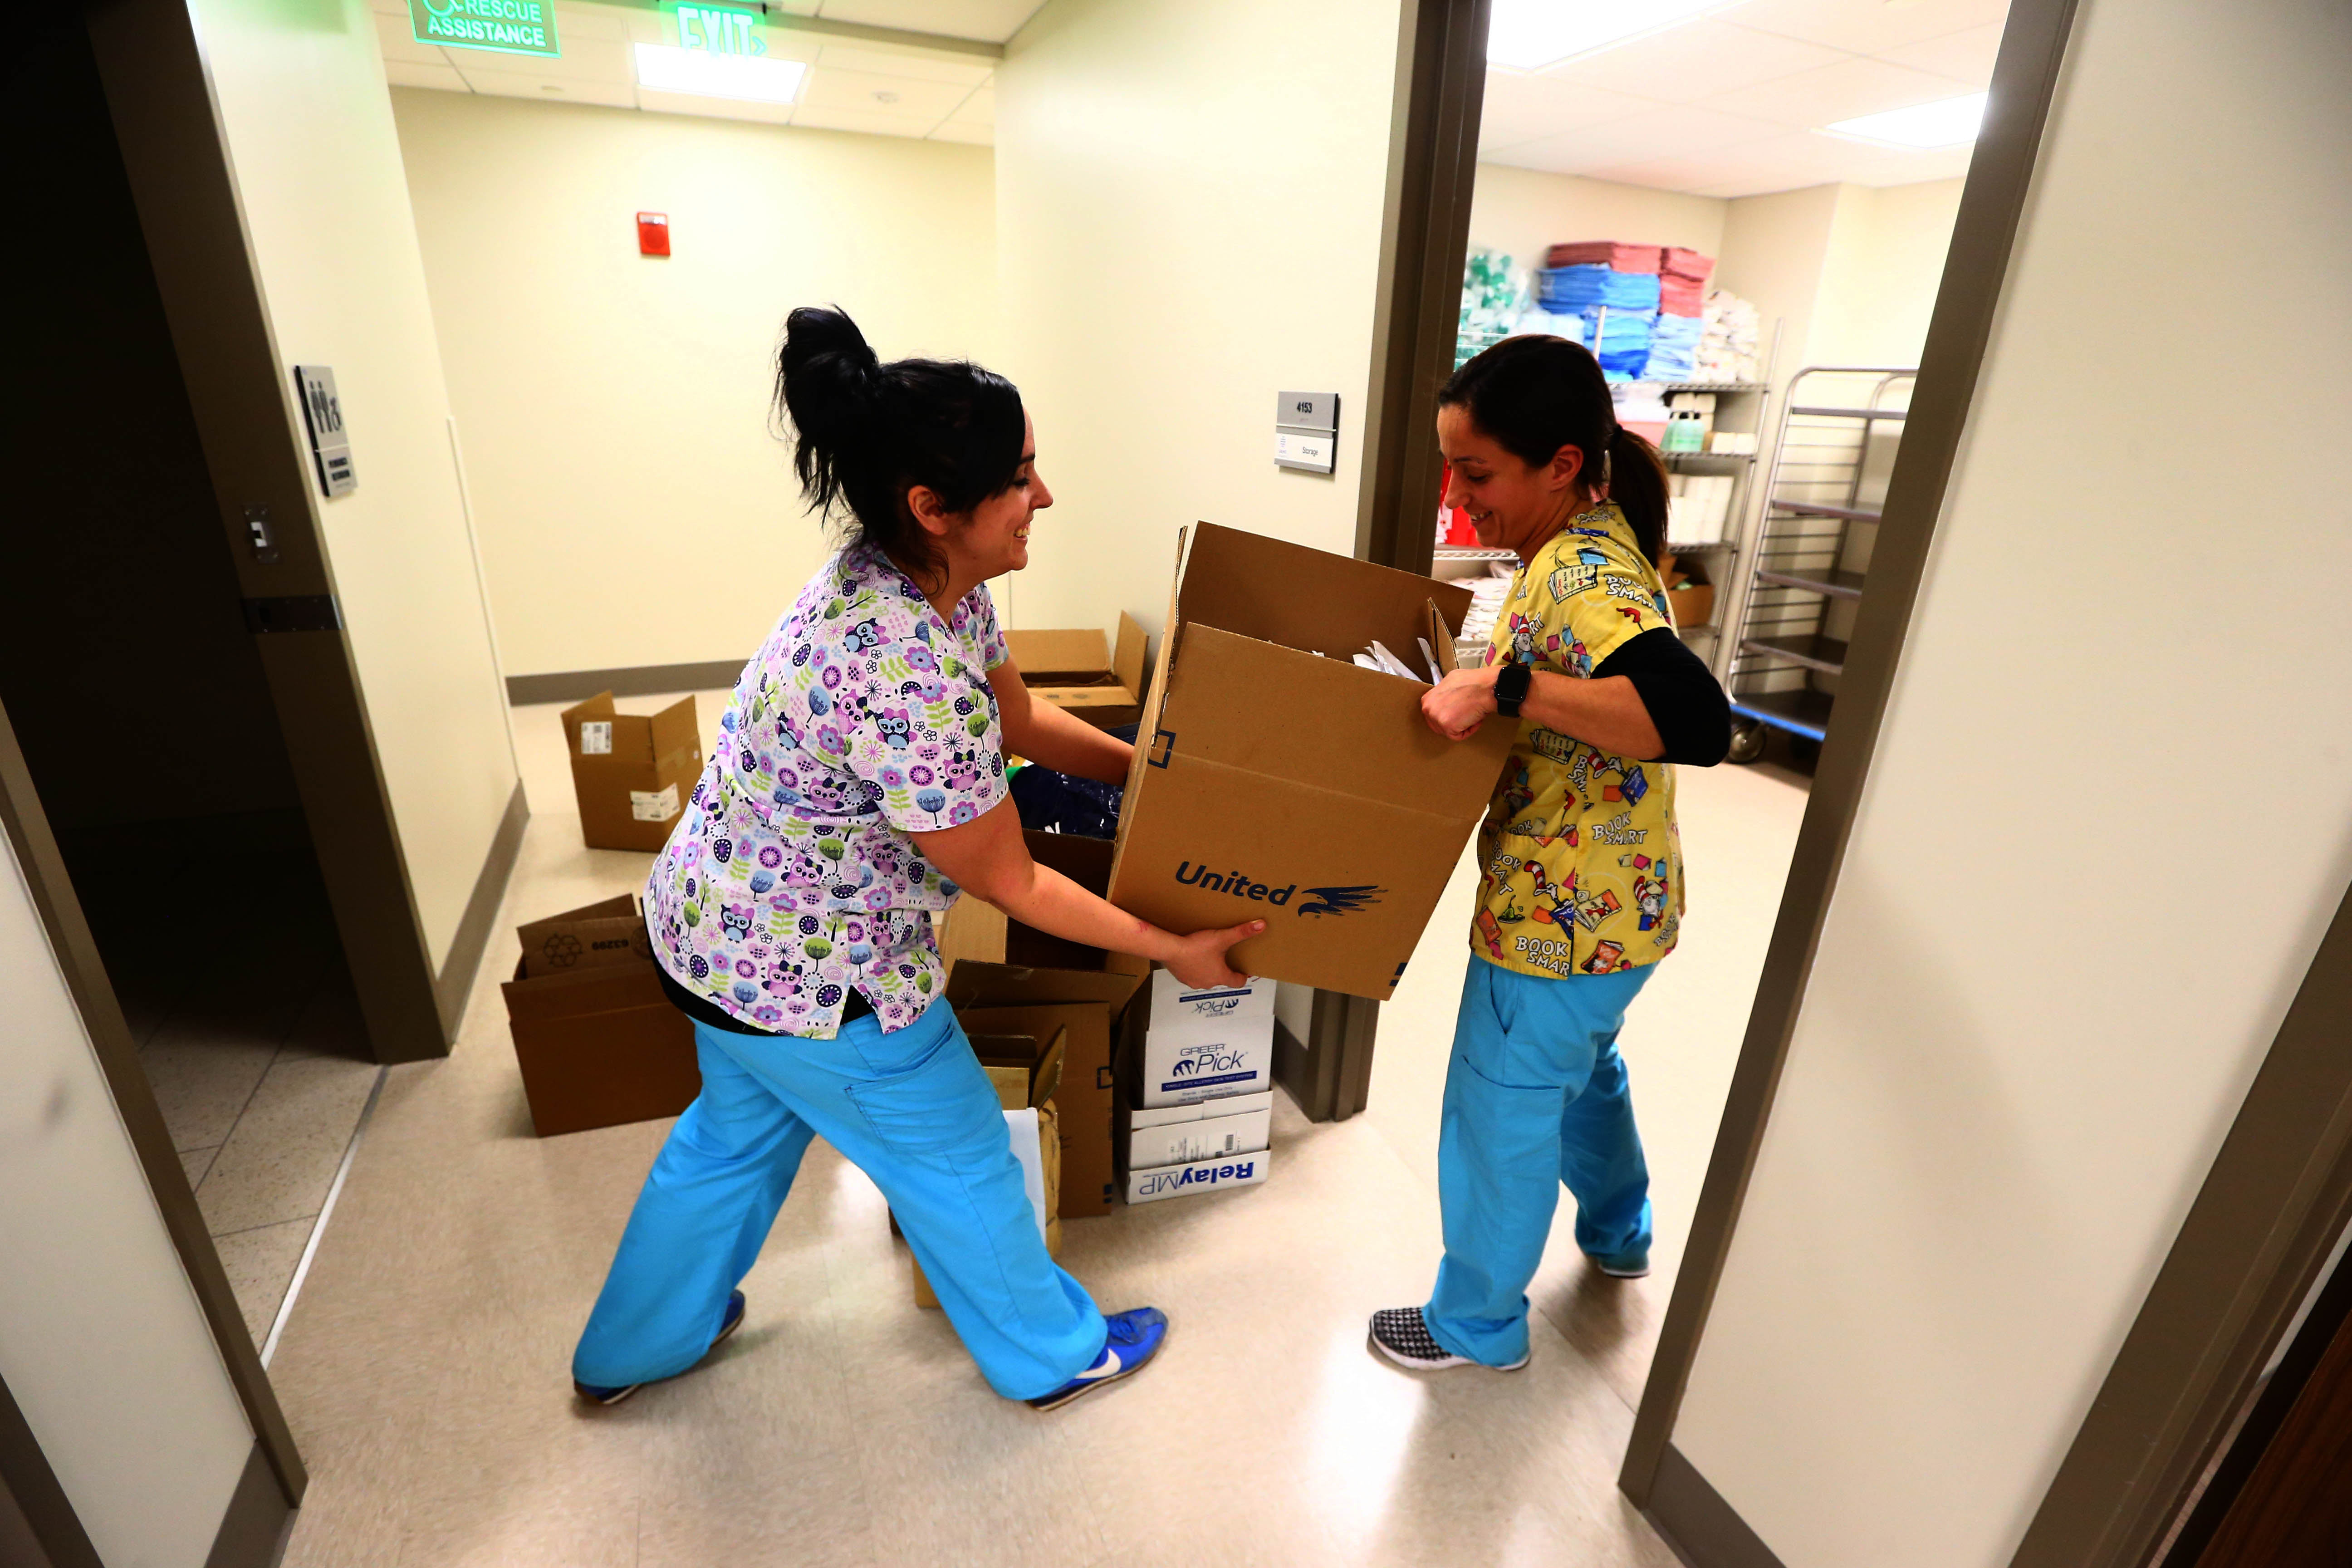 Emily Aquino, left, a registered nurse at UBMD Pediatrics, gets a hand from LPN Meghan Fusilli as they unpack supplies in a storeroom at a new pediatric clinic that opened in Conventus. (John Hickey/Buffalo News)